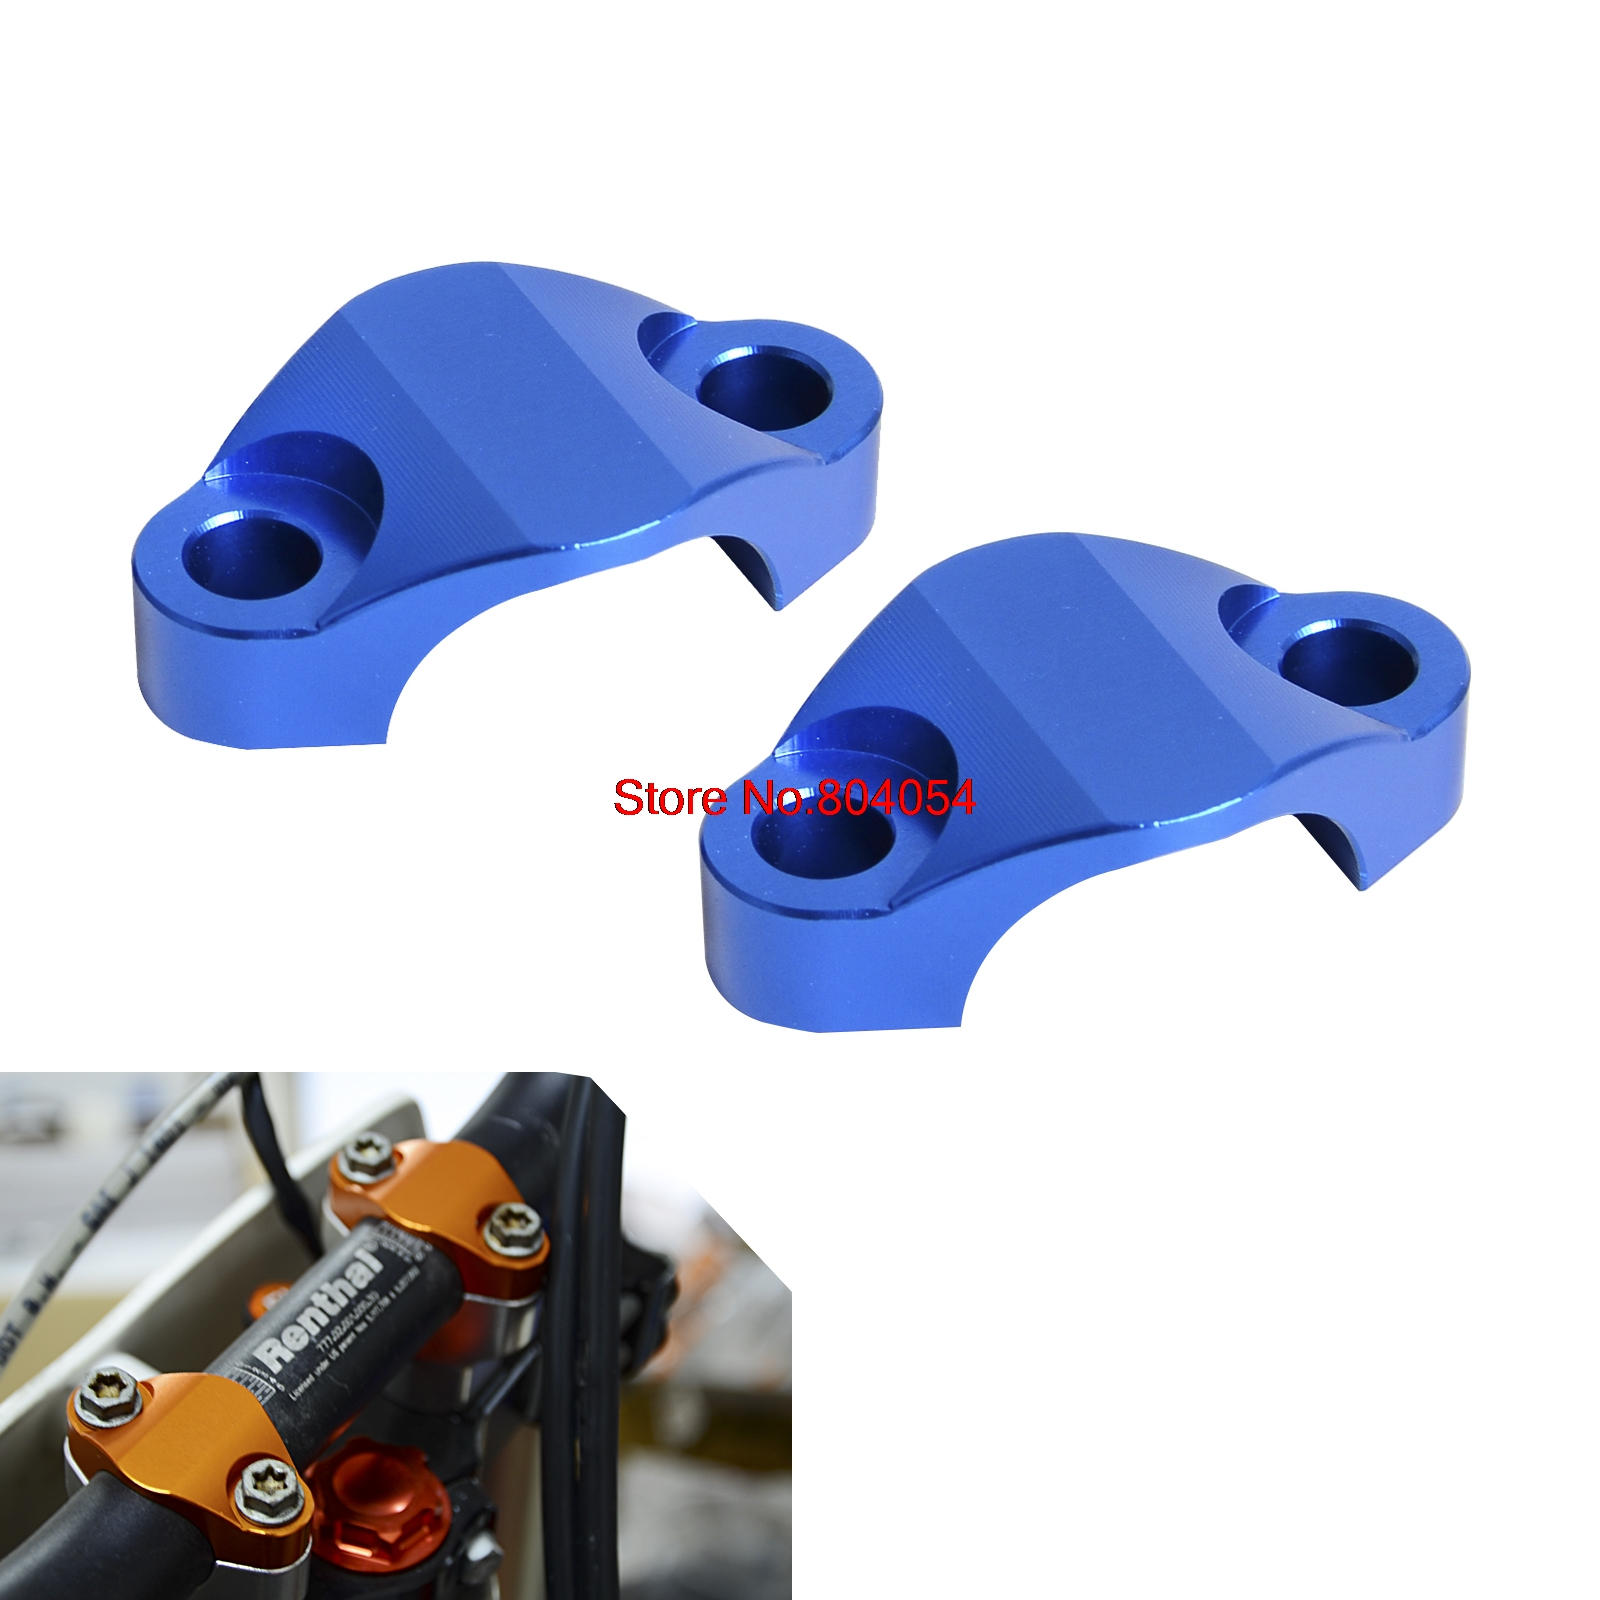 28mm CNC Billet Handlebar Clamp For KTM 85 105 125 150 200 250 300 350 400 450 500 525 530 Freeride SX XC EXC SXF XCF XCW SMR orange cnc billet factory oil filter cover for ktm sx exc xc f xcf w 250 400 450 520 525 540 950 990